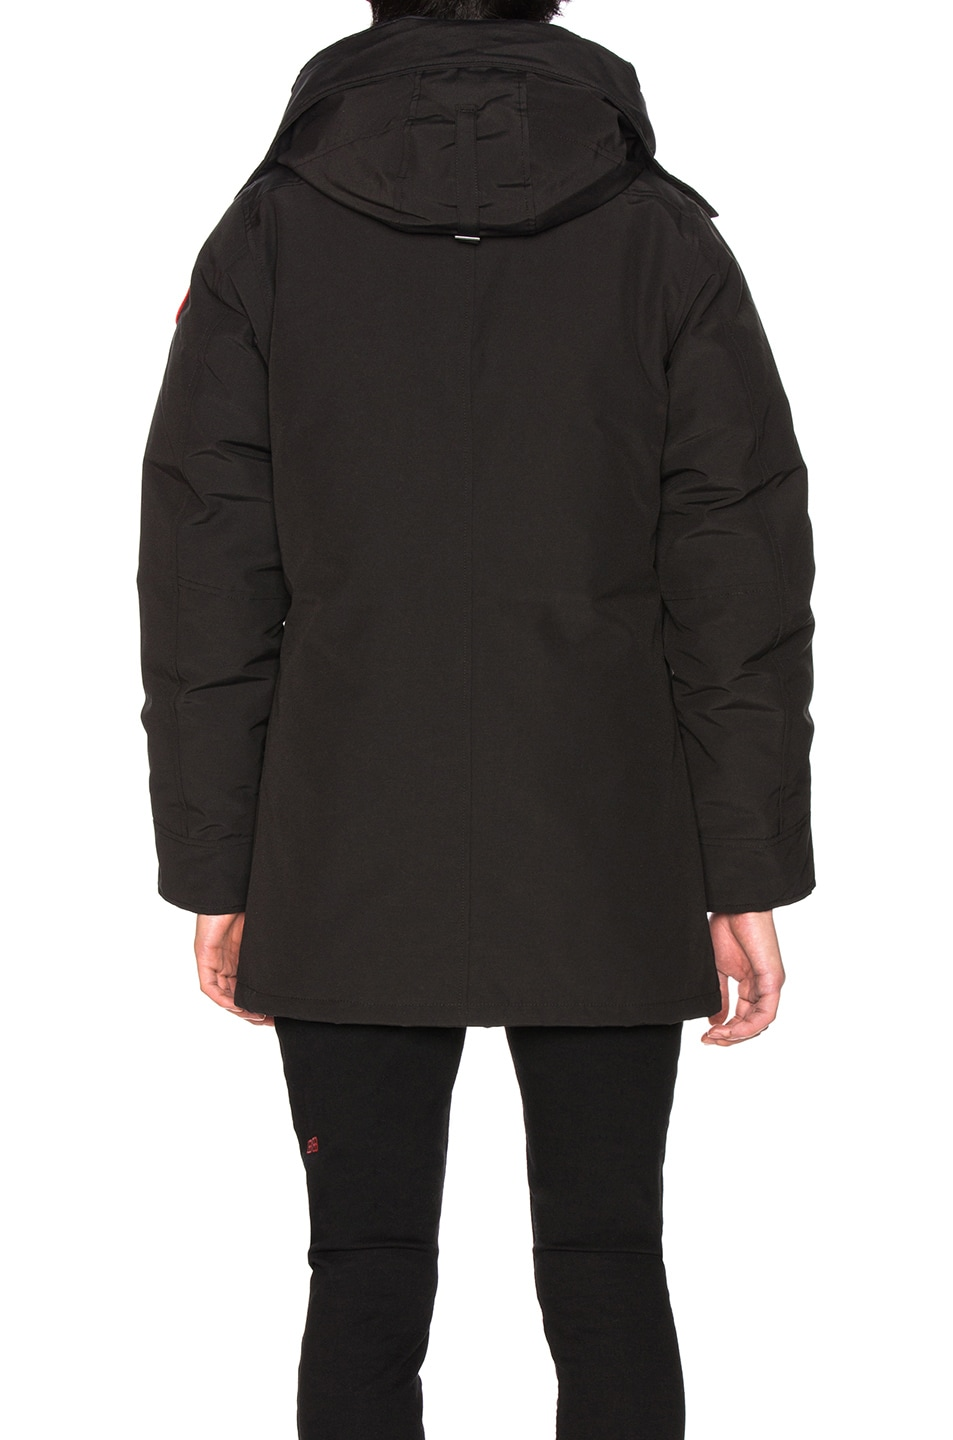 Image 5 of Canada Goose Chateau Non Fur Parka in Black